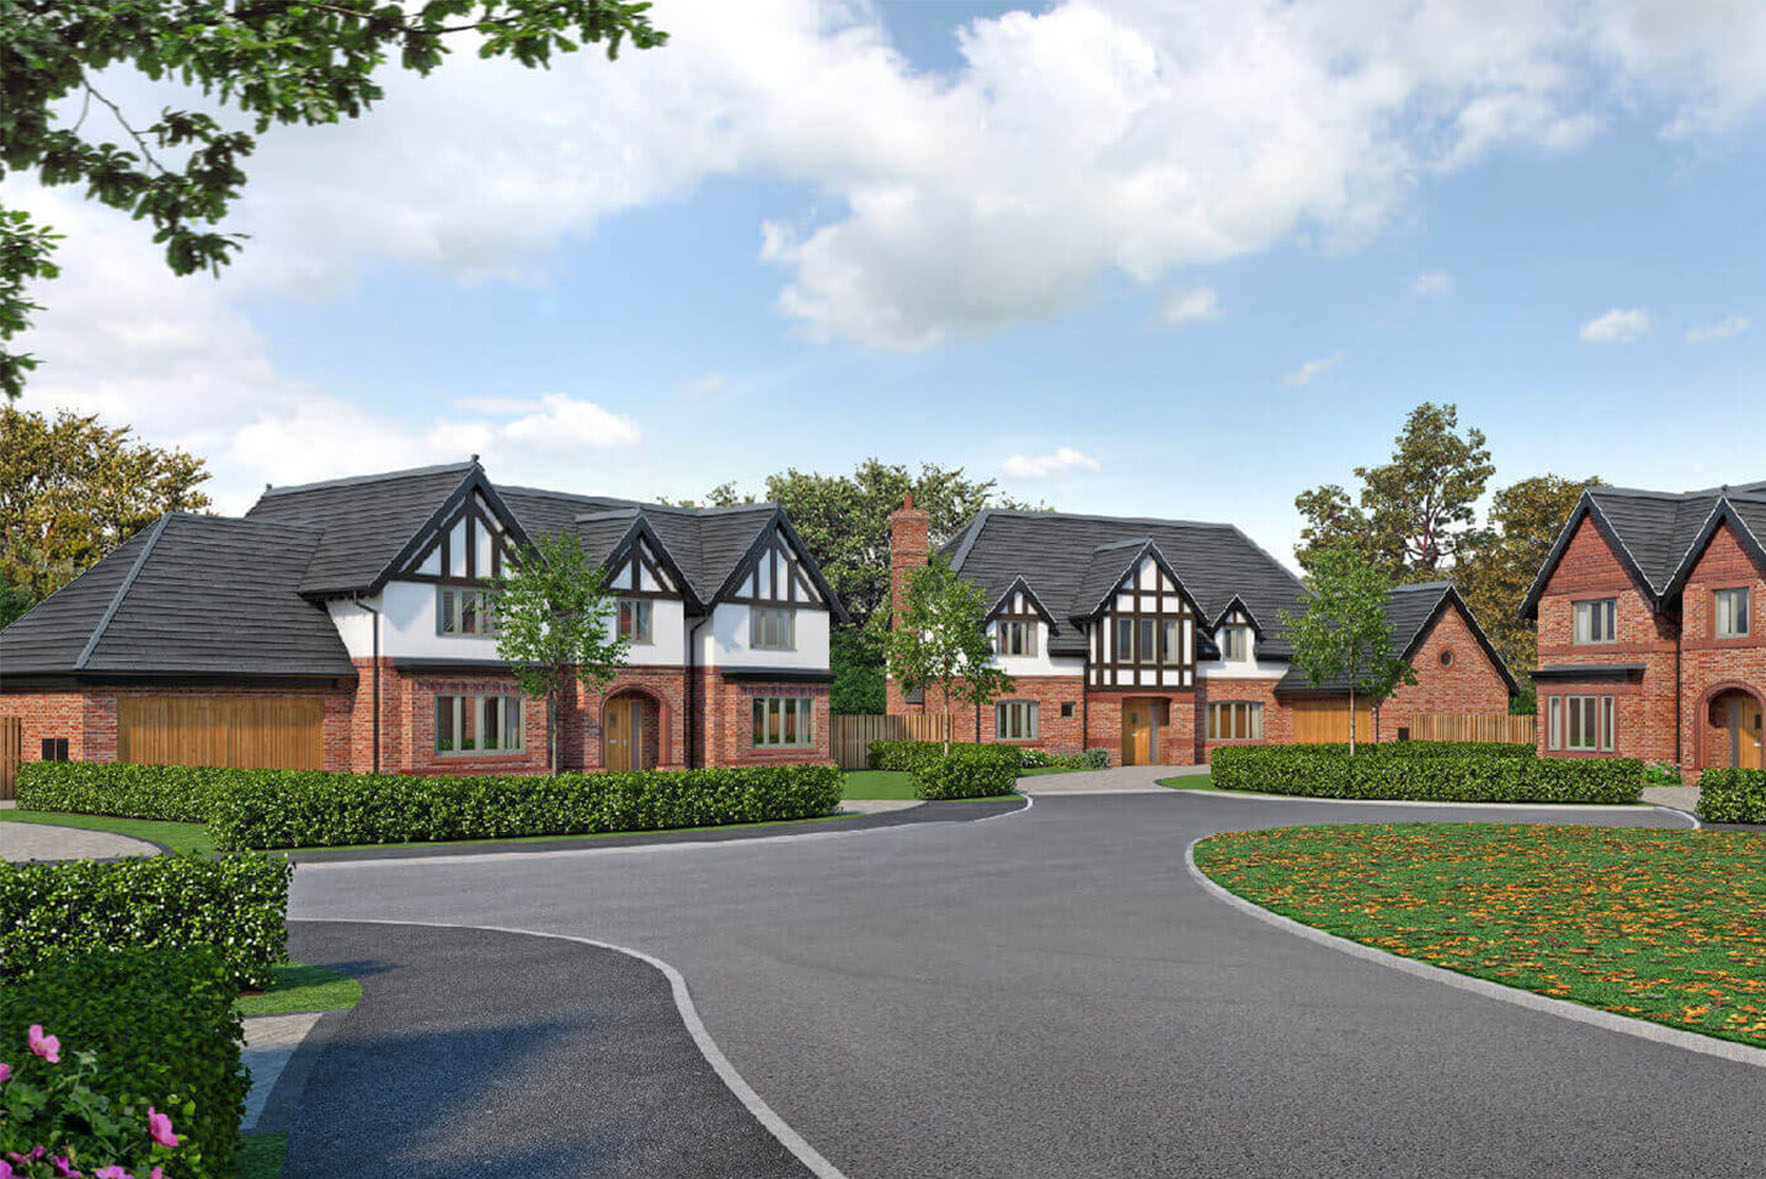 British countryside houses by Duchy Homes